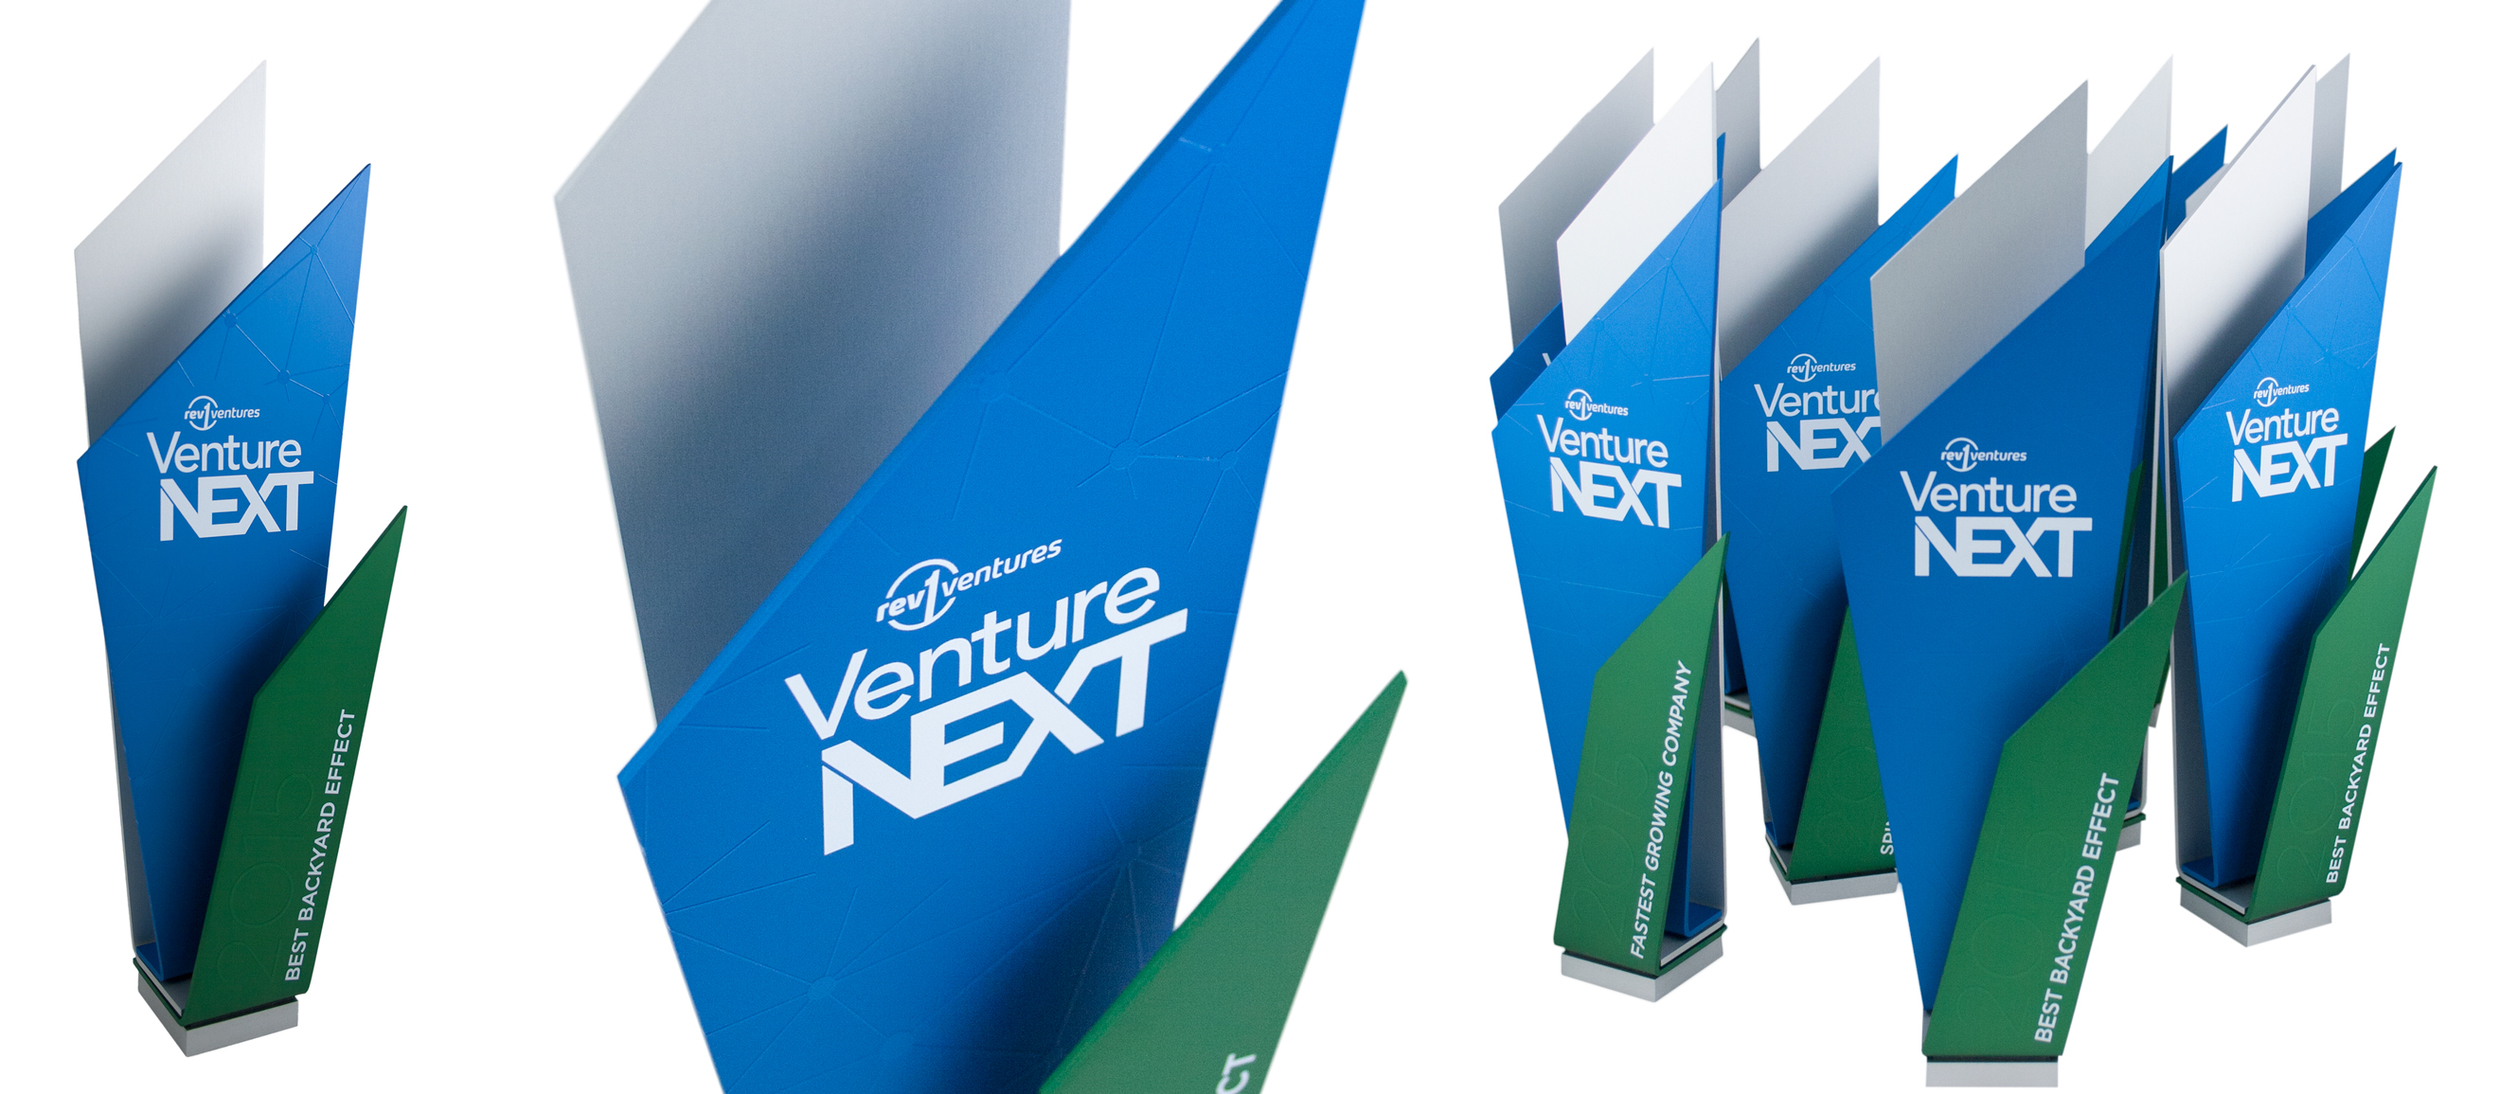 venture-next-technology-business-investment-awards-custom-modern-unique-creative-wow